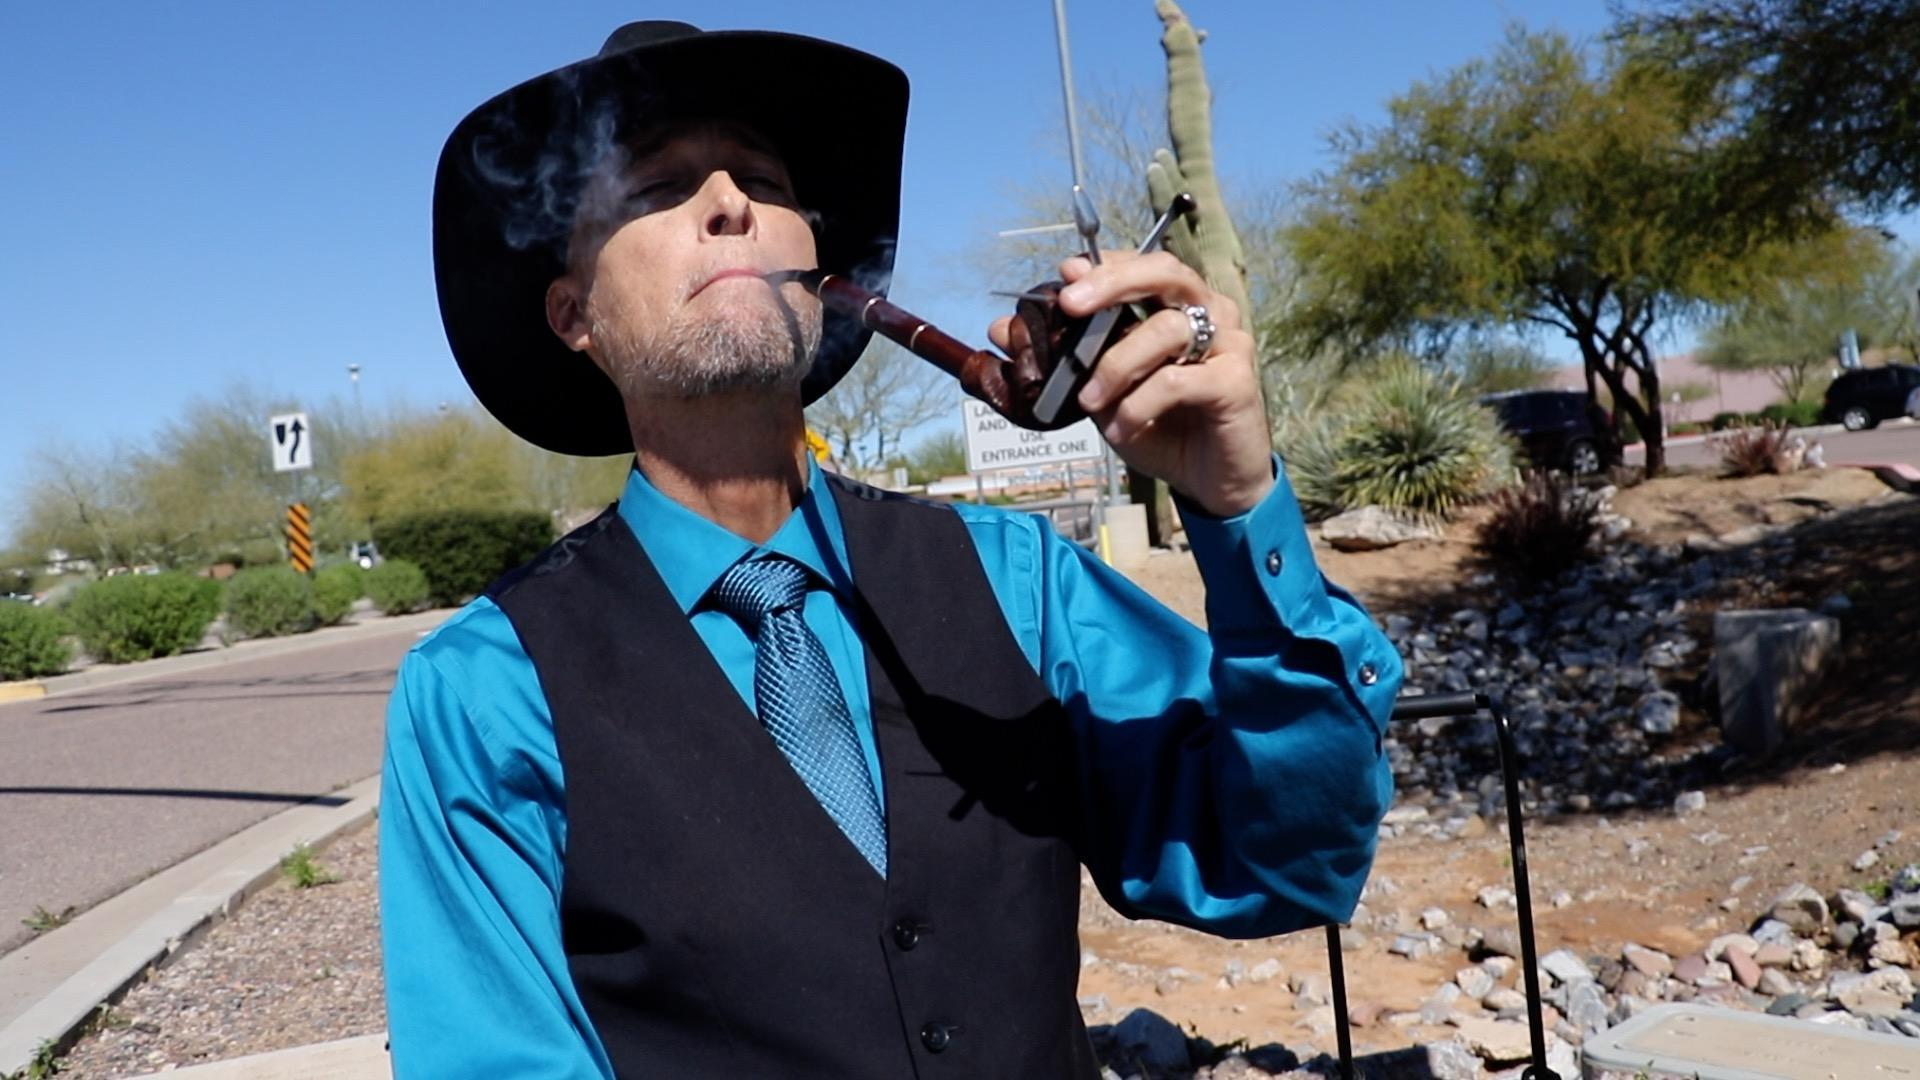 Dr. Michael Valle smoking his pipe off the campus at Scottsdale Community College